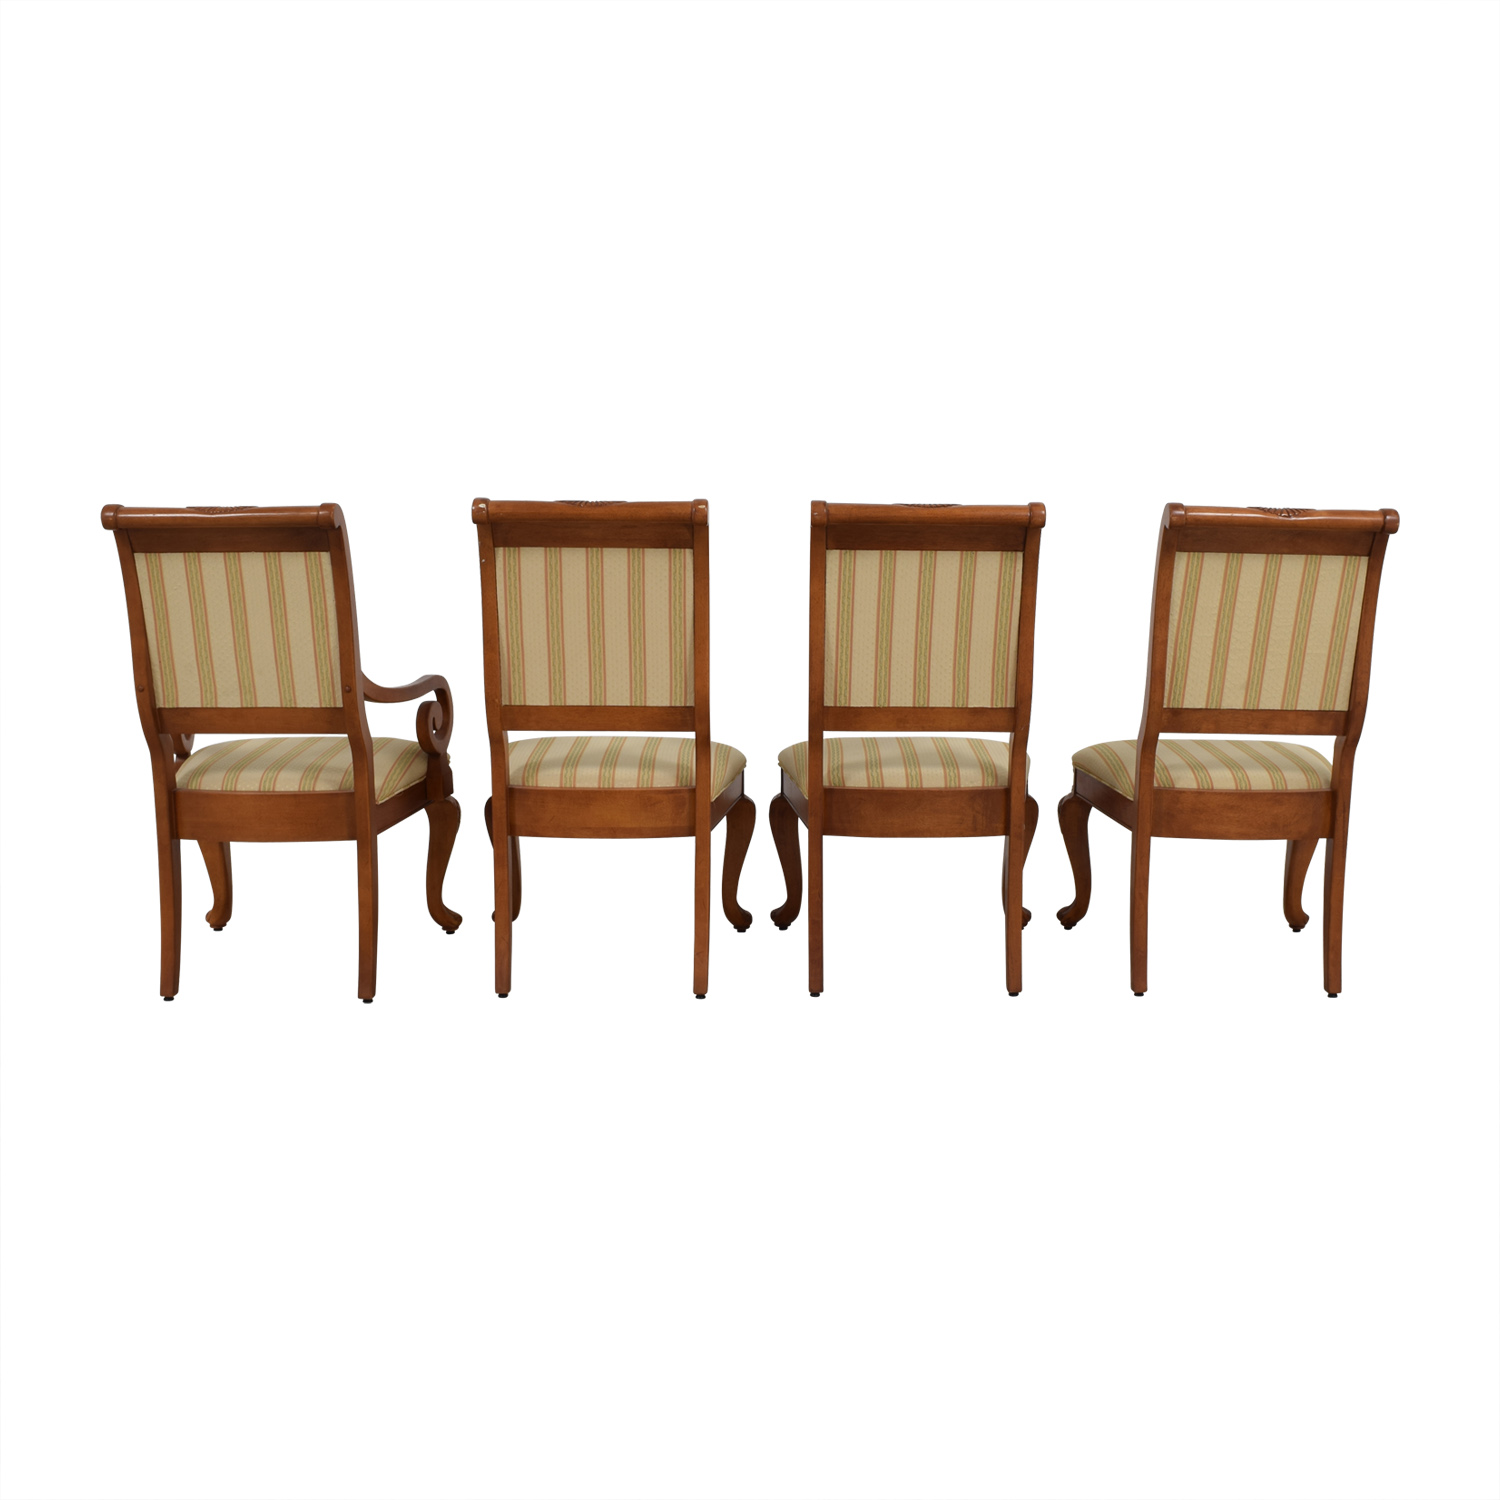 shop Furniture Masters Striped Upholstered Carved Dining Chairs Furniture Masters Dining Chairs